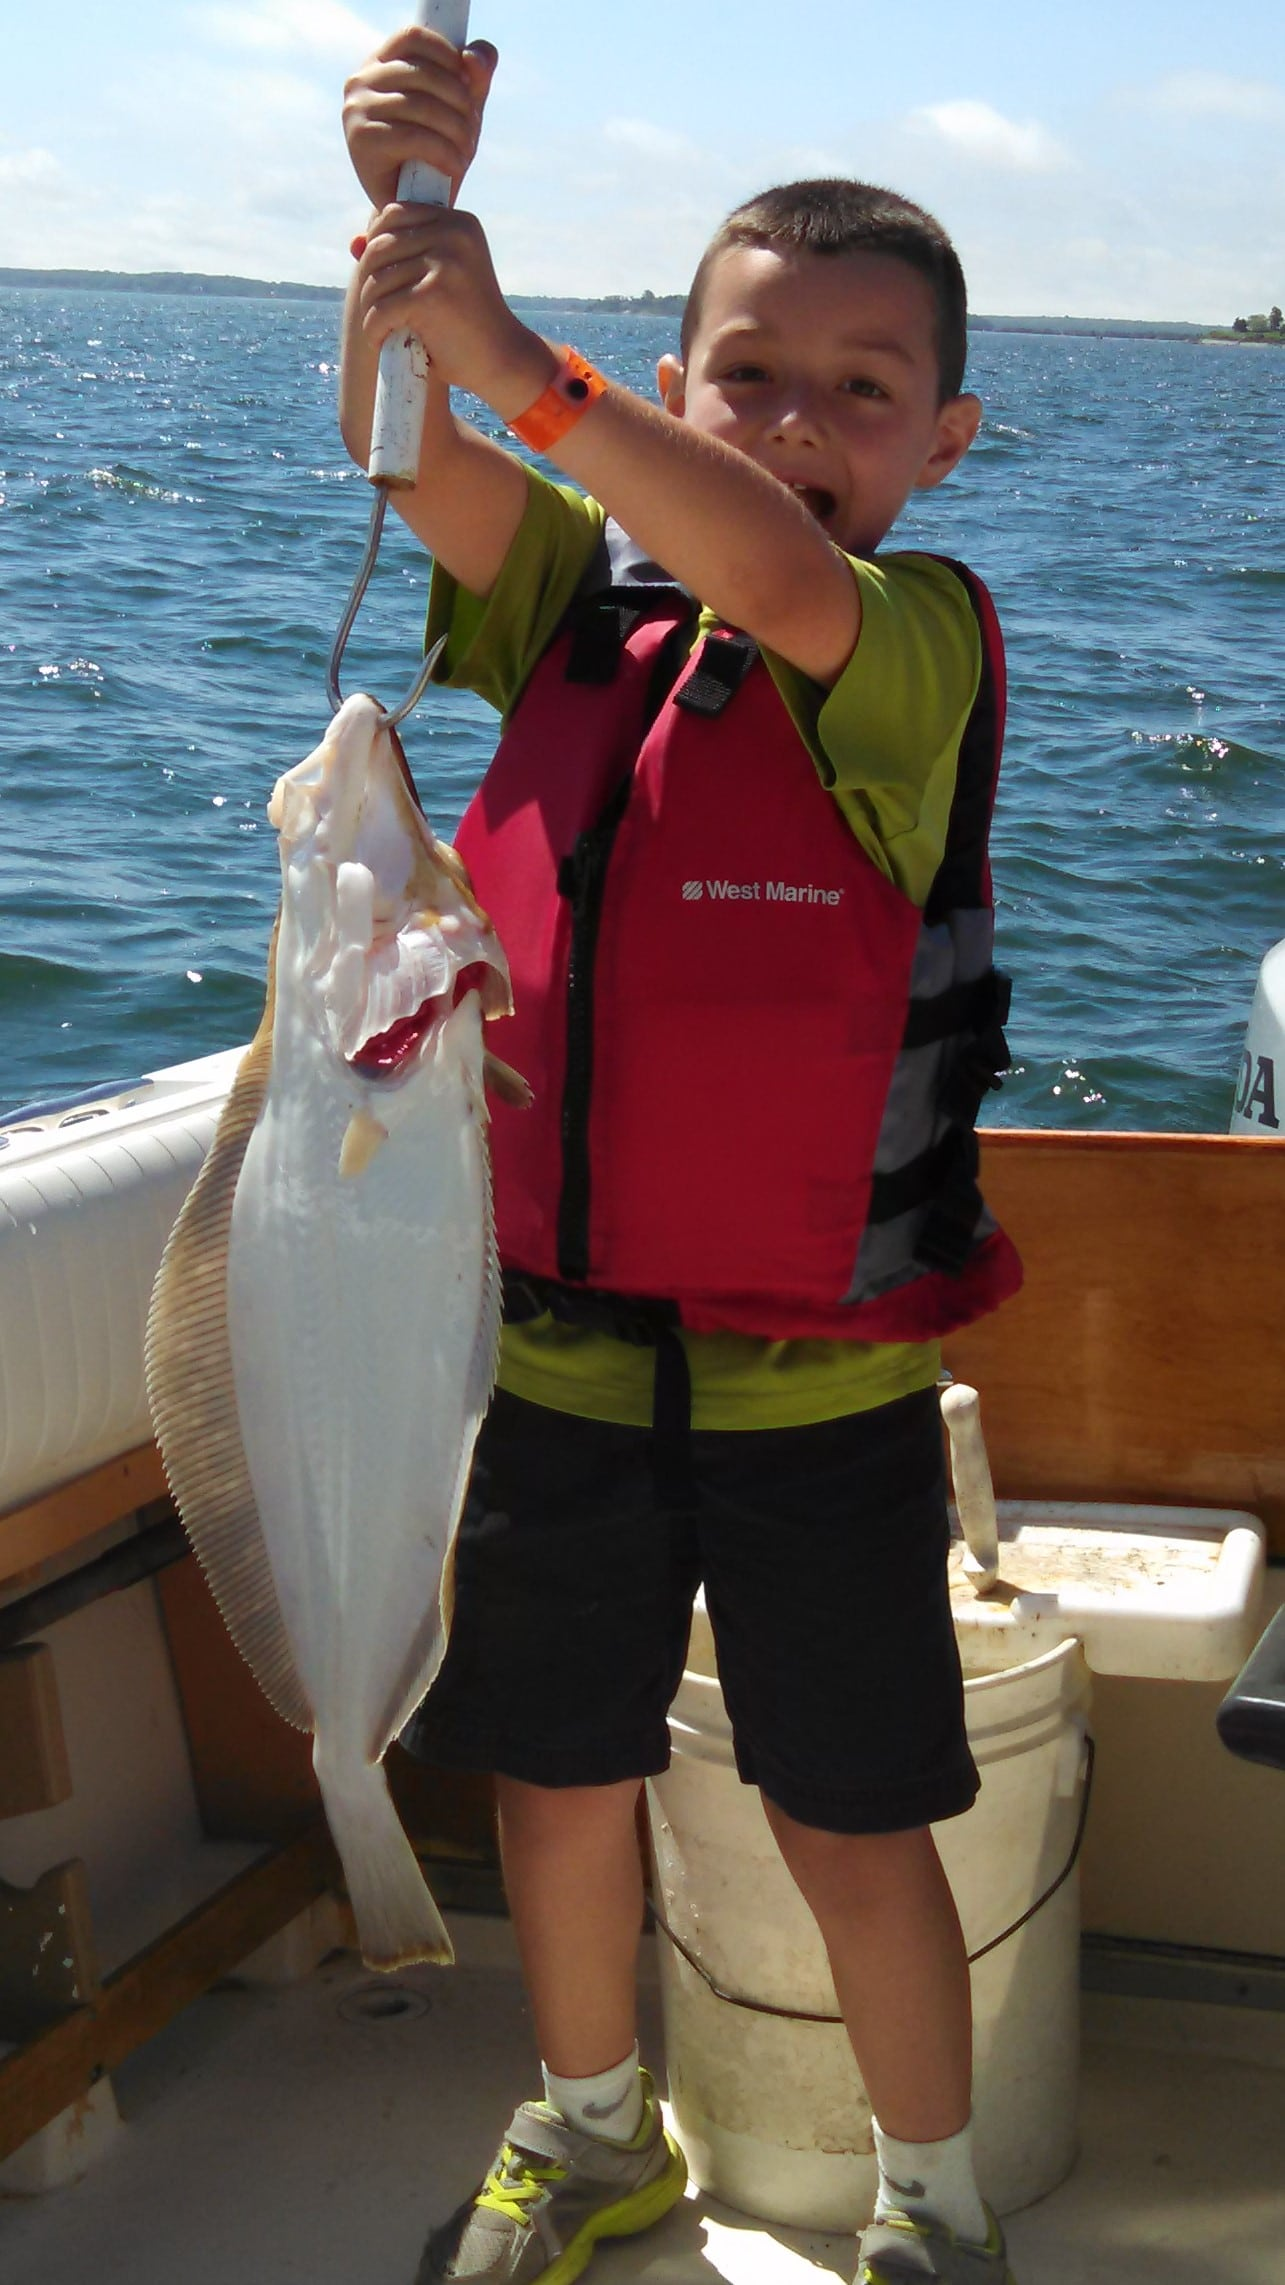 Fishing Charter with Peconic Water Sports in Greenport, NY on the North Fork of Long Island